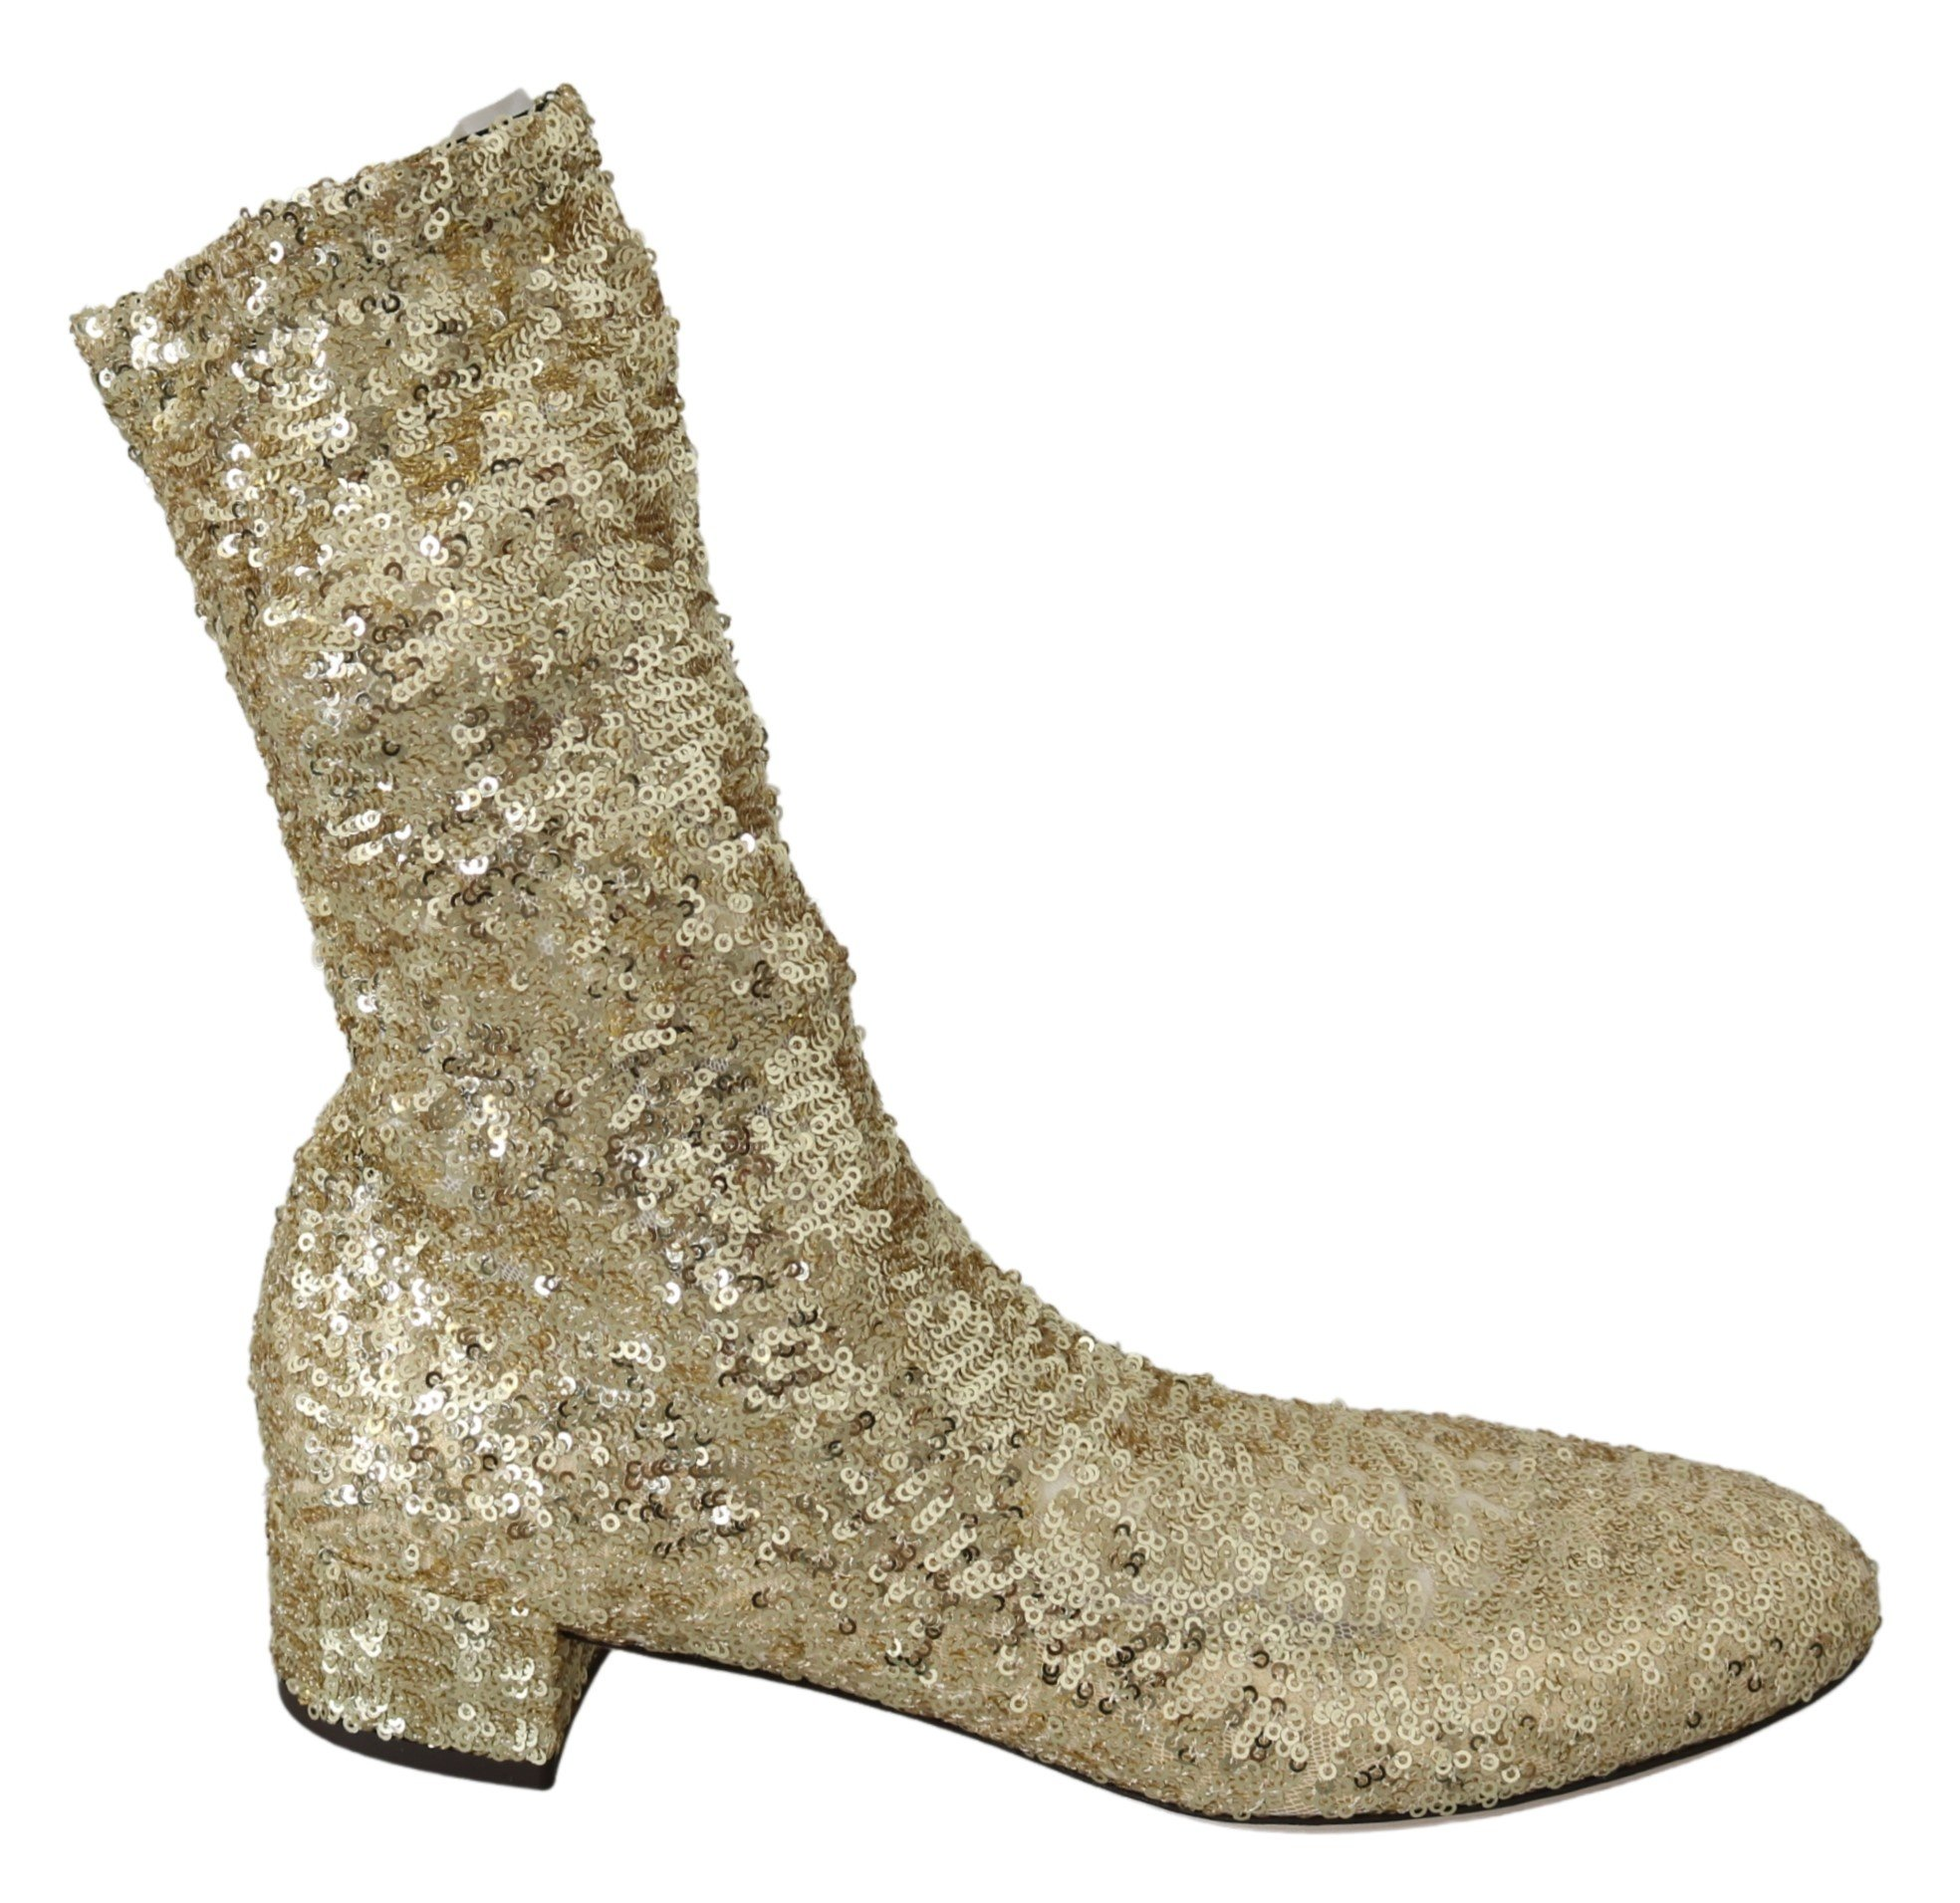 Gold Sequined Stretch Ankle High Boots - EU39.5/US9